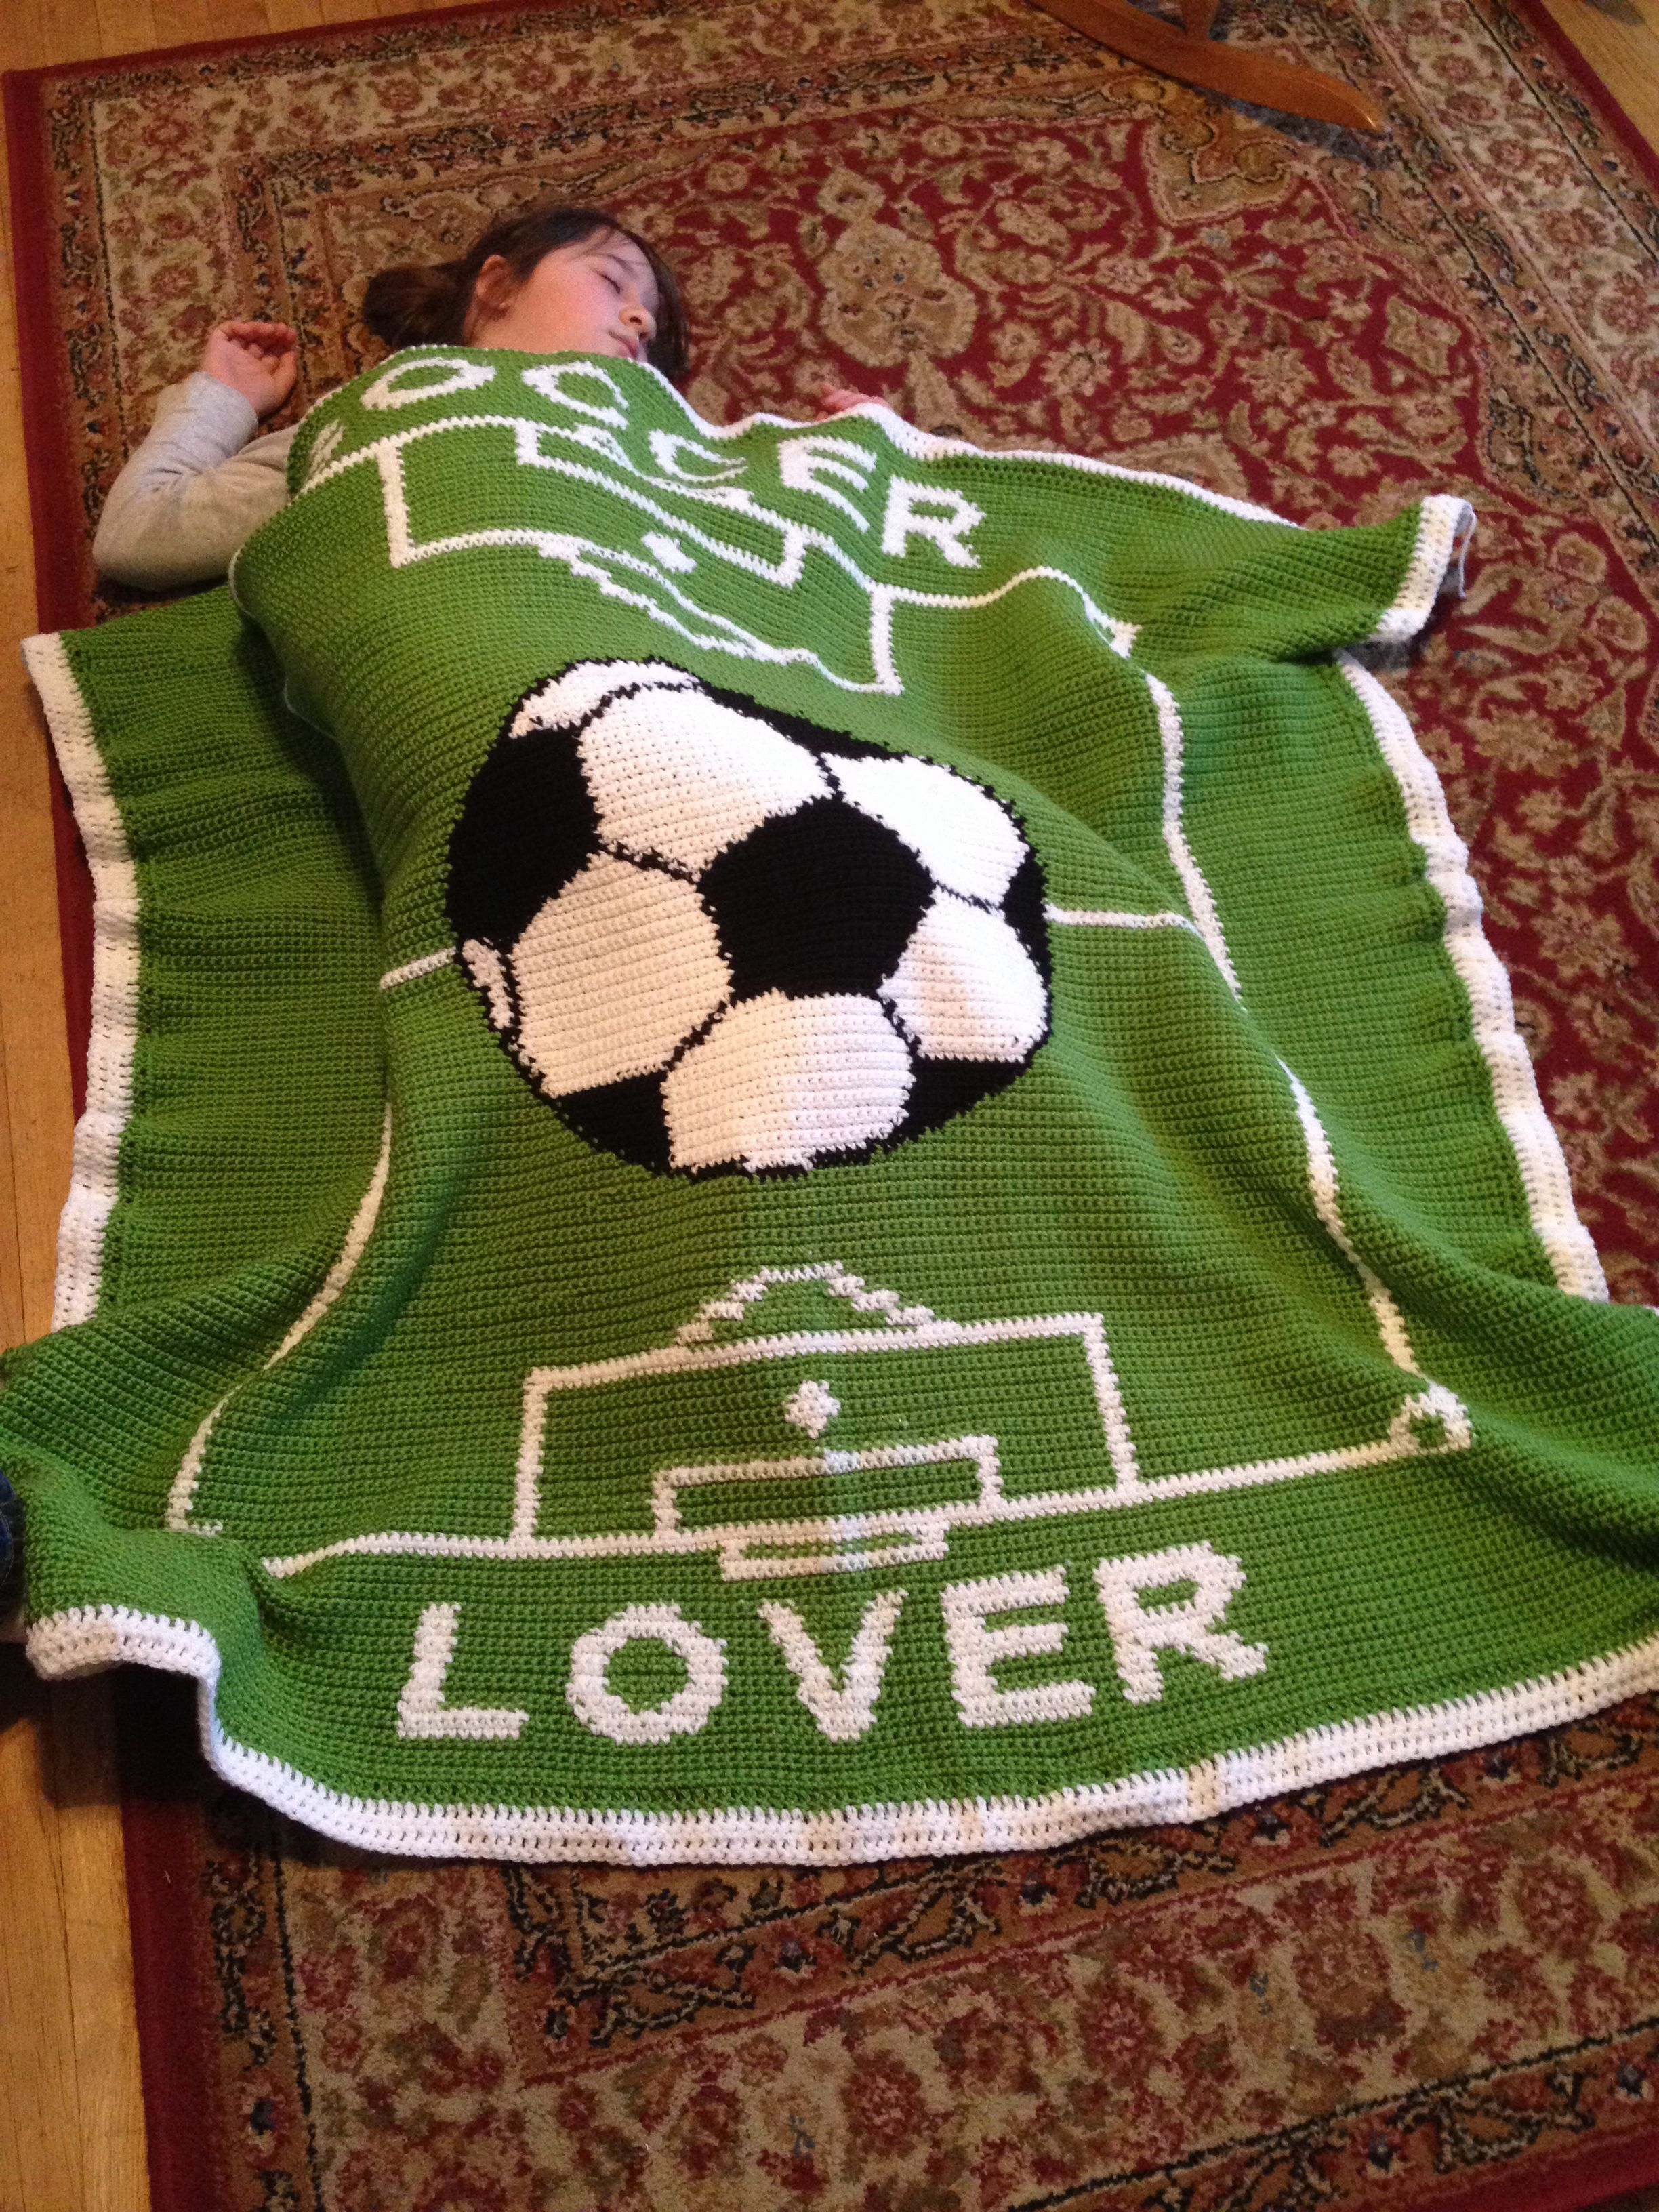 Crochet Soccer Blanket Crafts Crochet Knitting Crochet Patterns